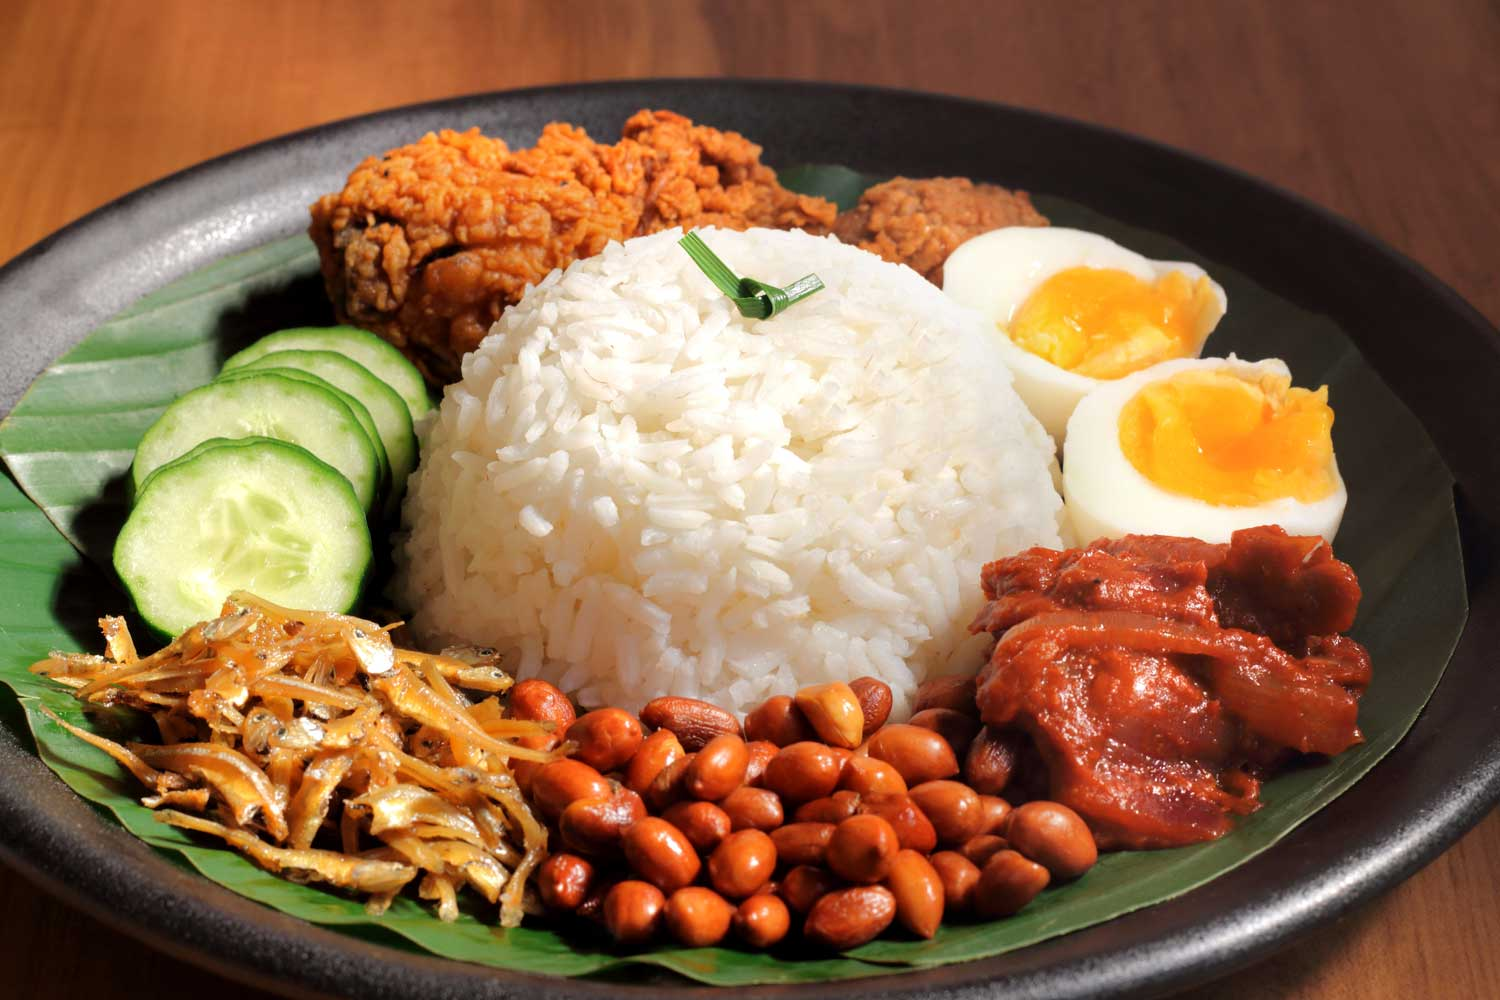 TASTE THE BEST OF MALAYSIA - 28 Best Malaysian Food